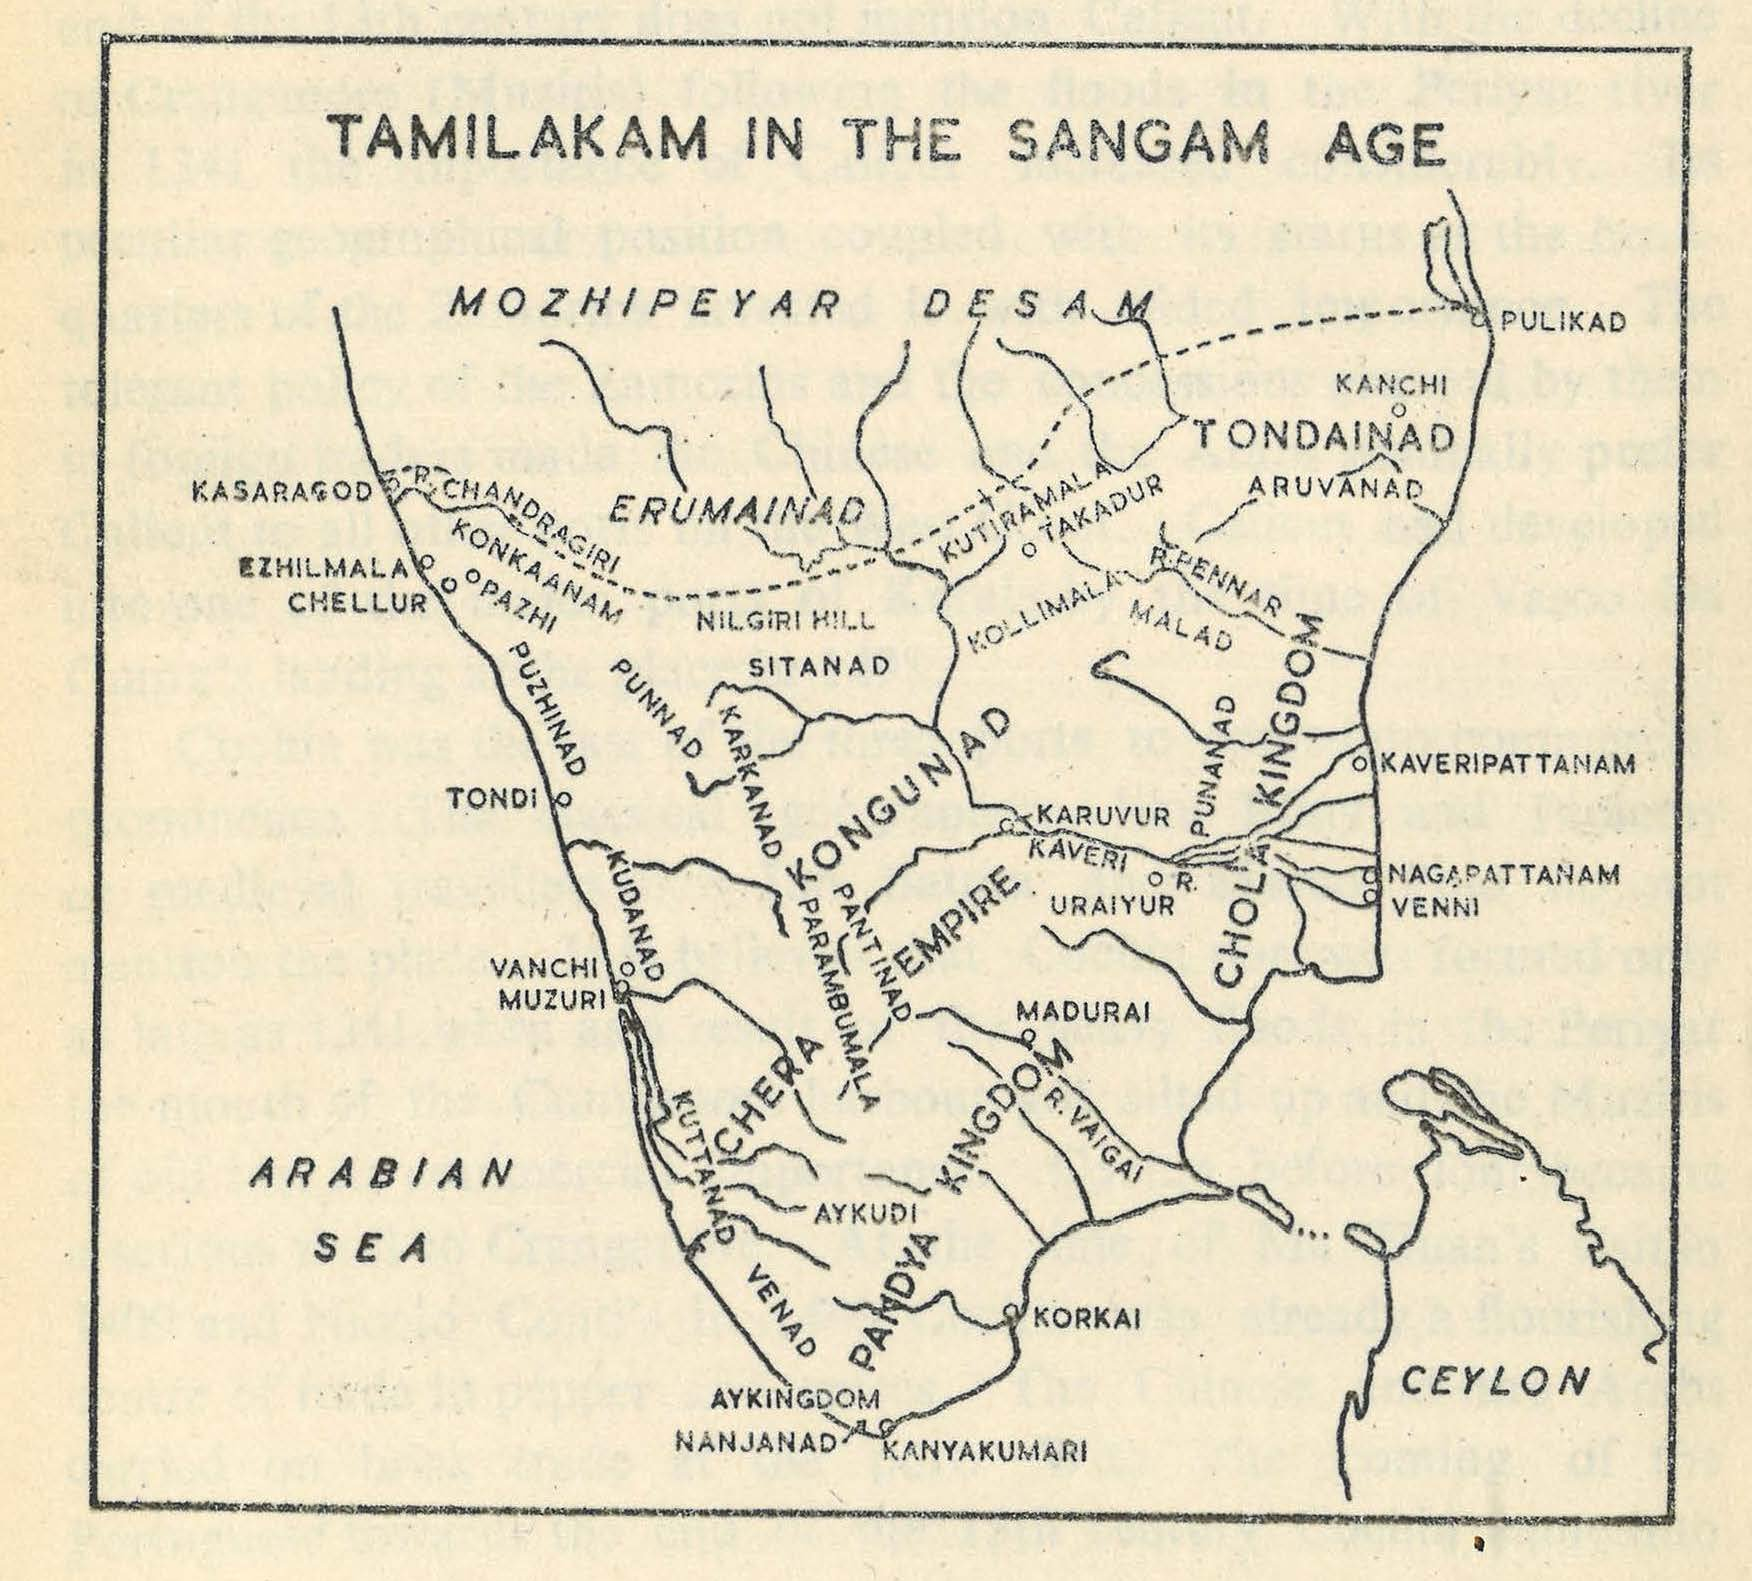 An old map of southern India, noting bodies of water, empires, and cities.